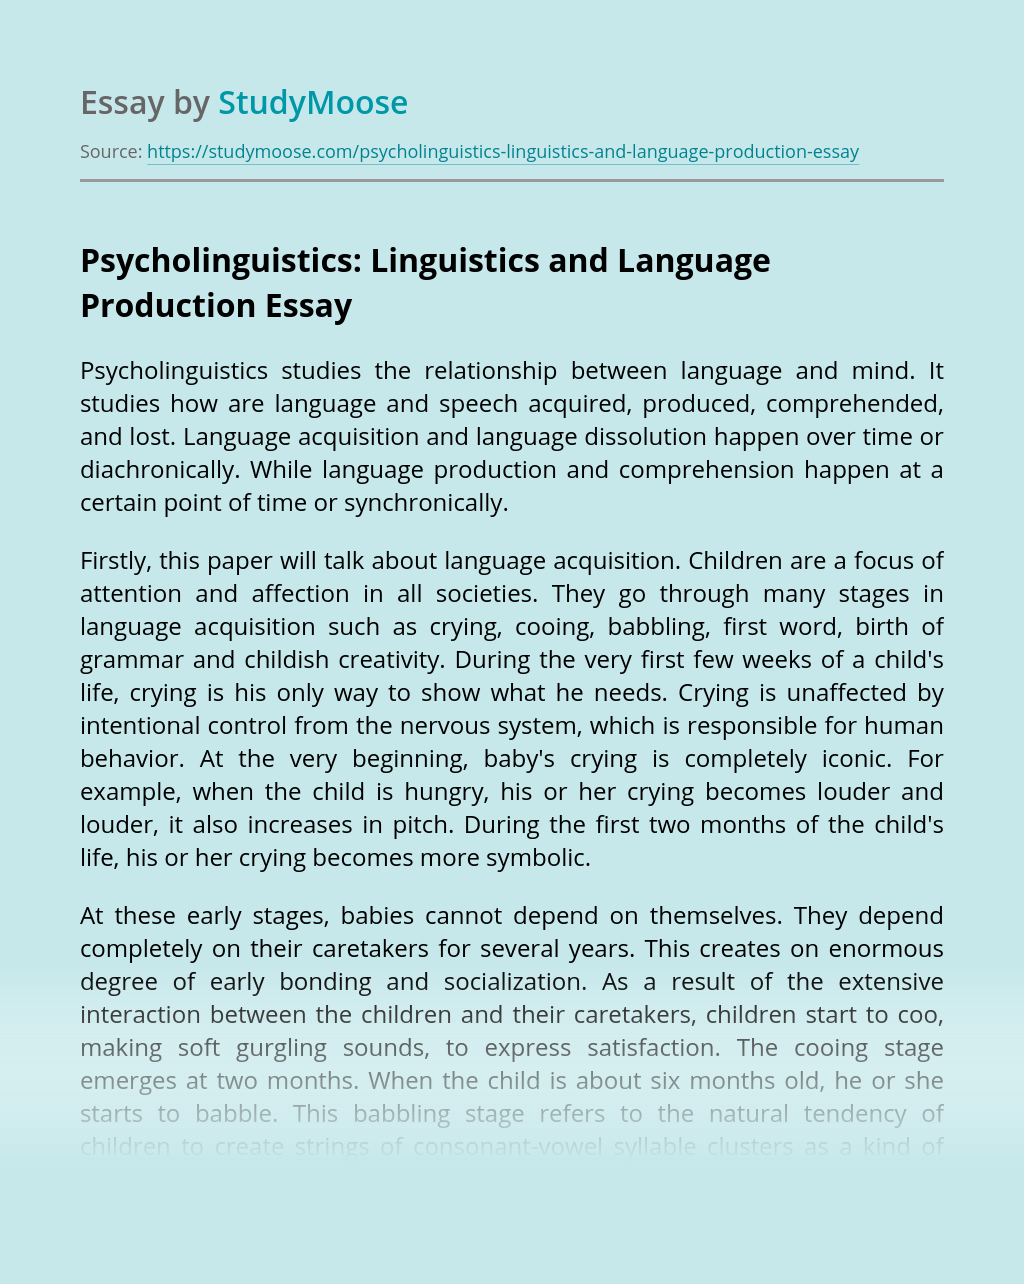 Psycholinguistics: Linguistics and Language Production